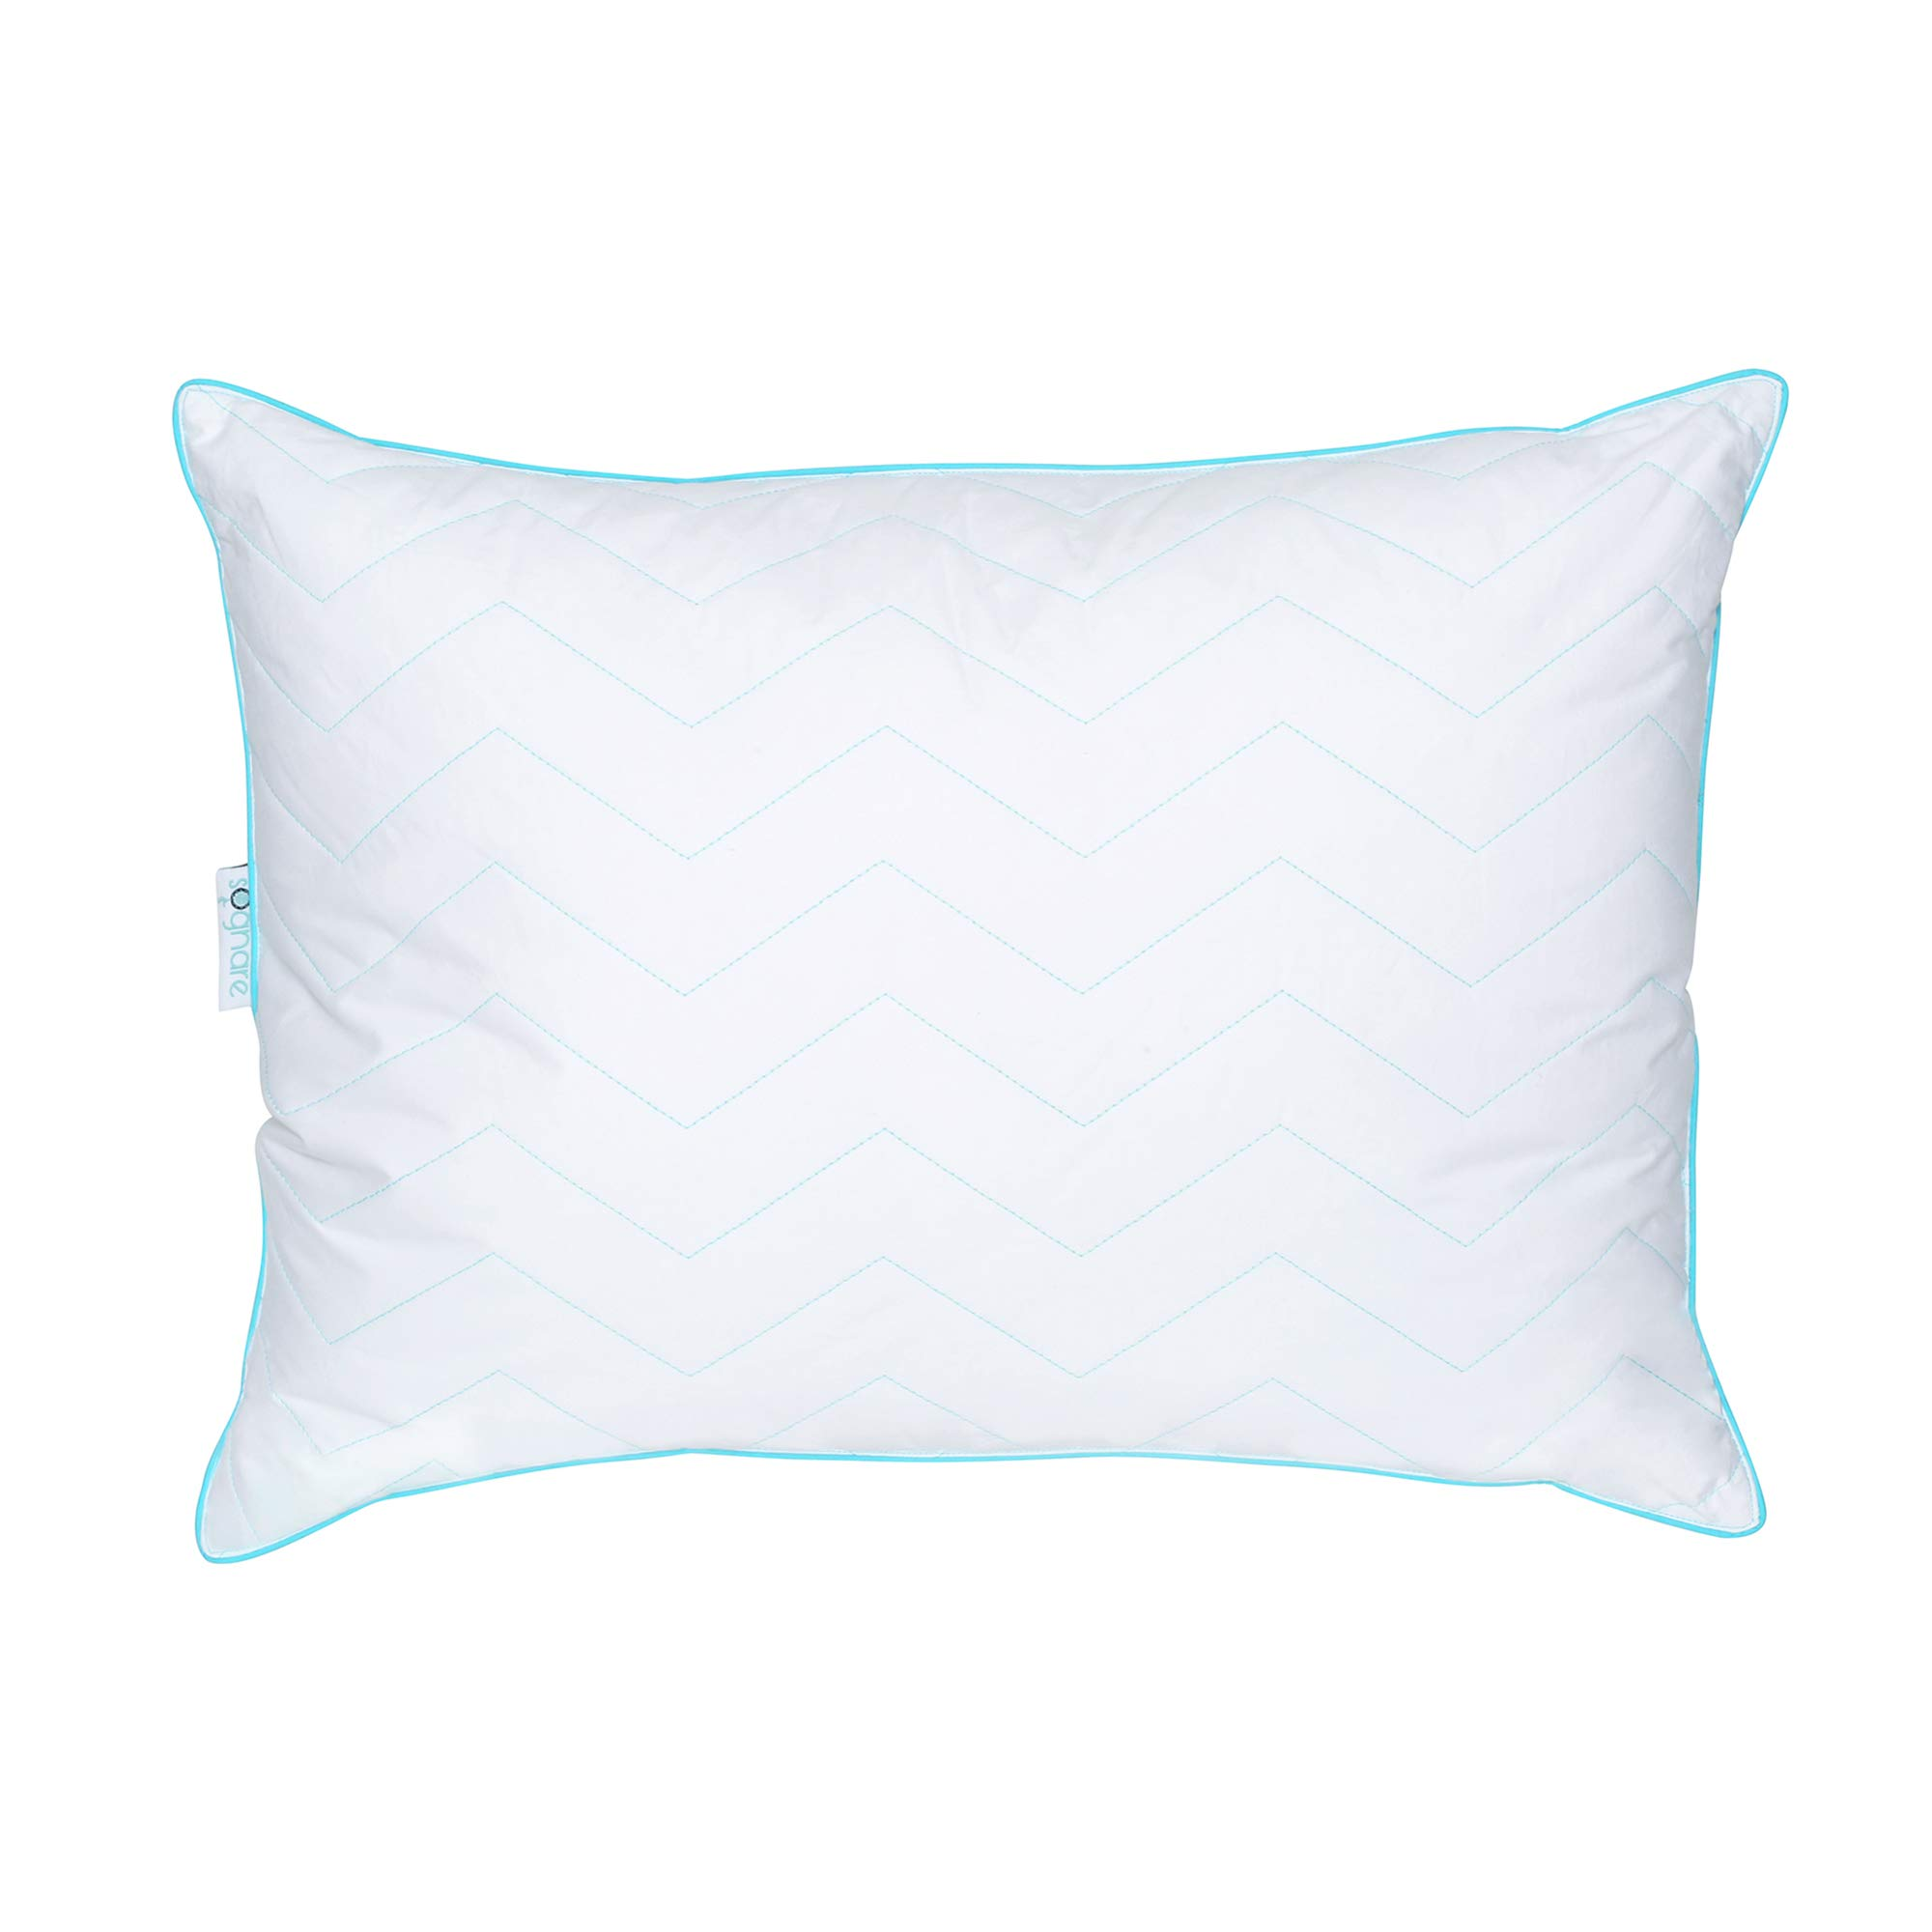 SOGNARE, The Finest Soft Hypoallergenic King Size Pillow Cotton, Soft Gel Microfiber Filling. The Best Balance Between Firmness and Softness. Never Loses its Shape. Machine Washable.